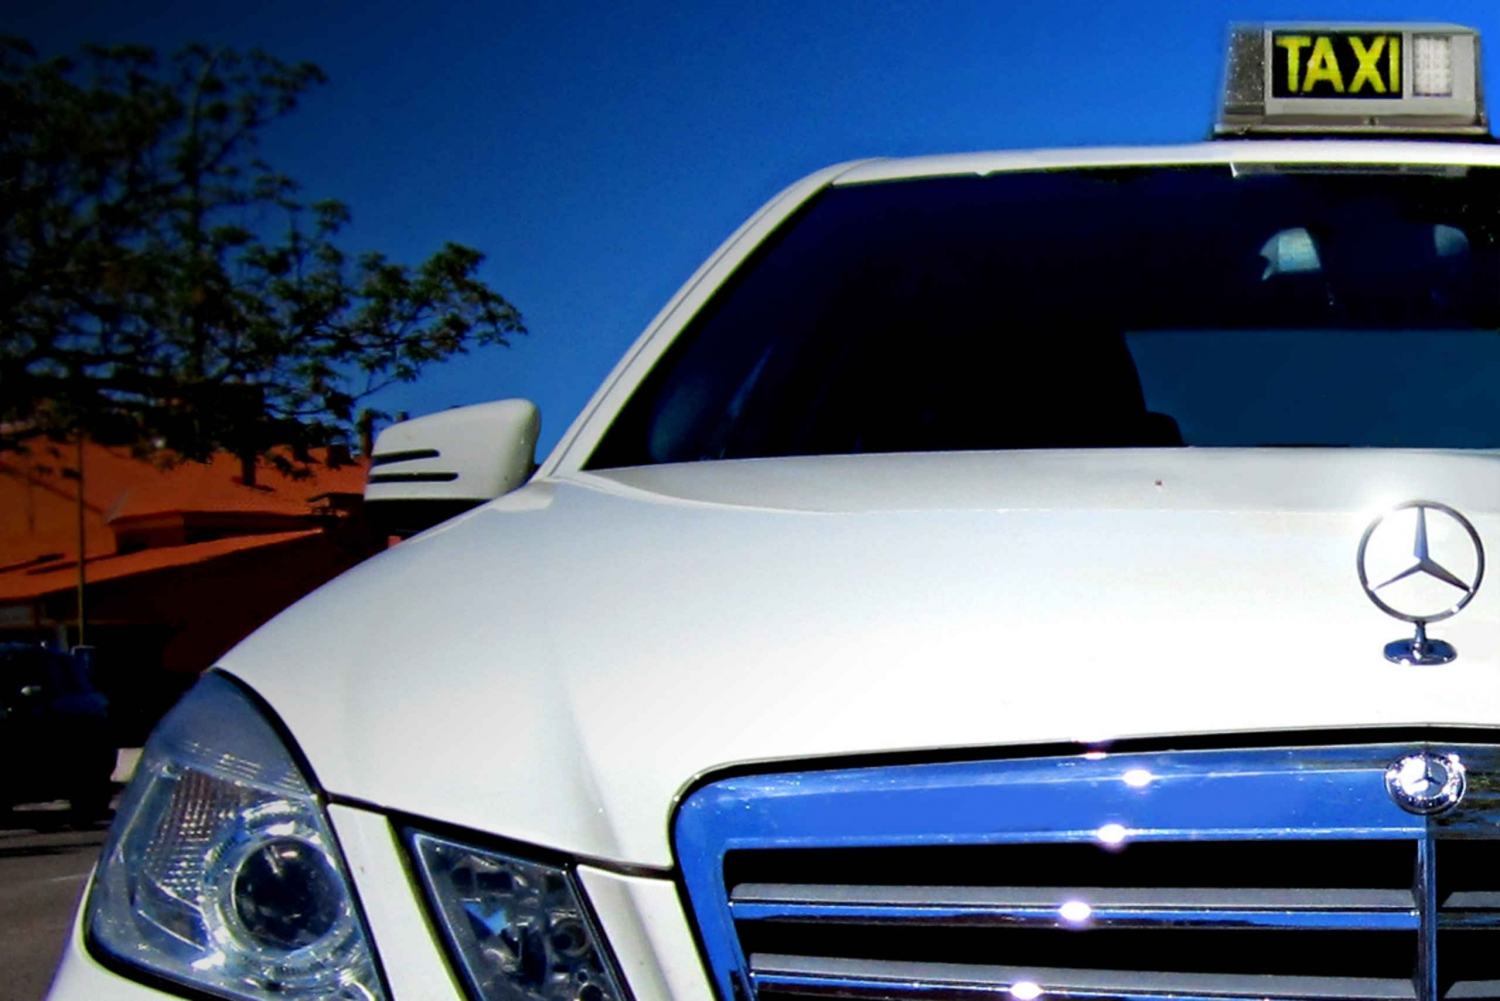 Madrid Airport to City Center: 1-Way Private Transfer